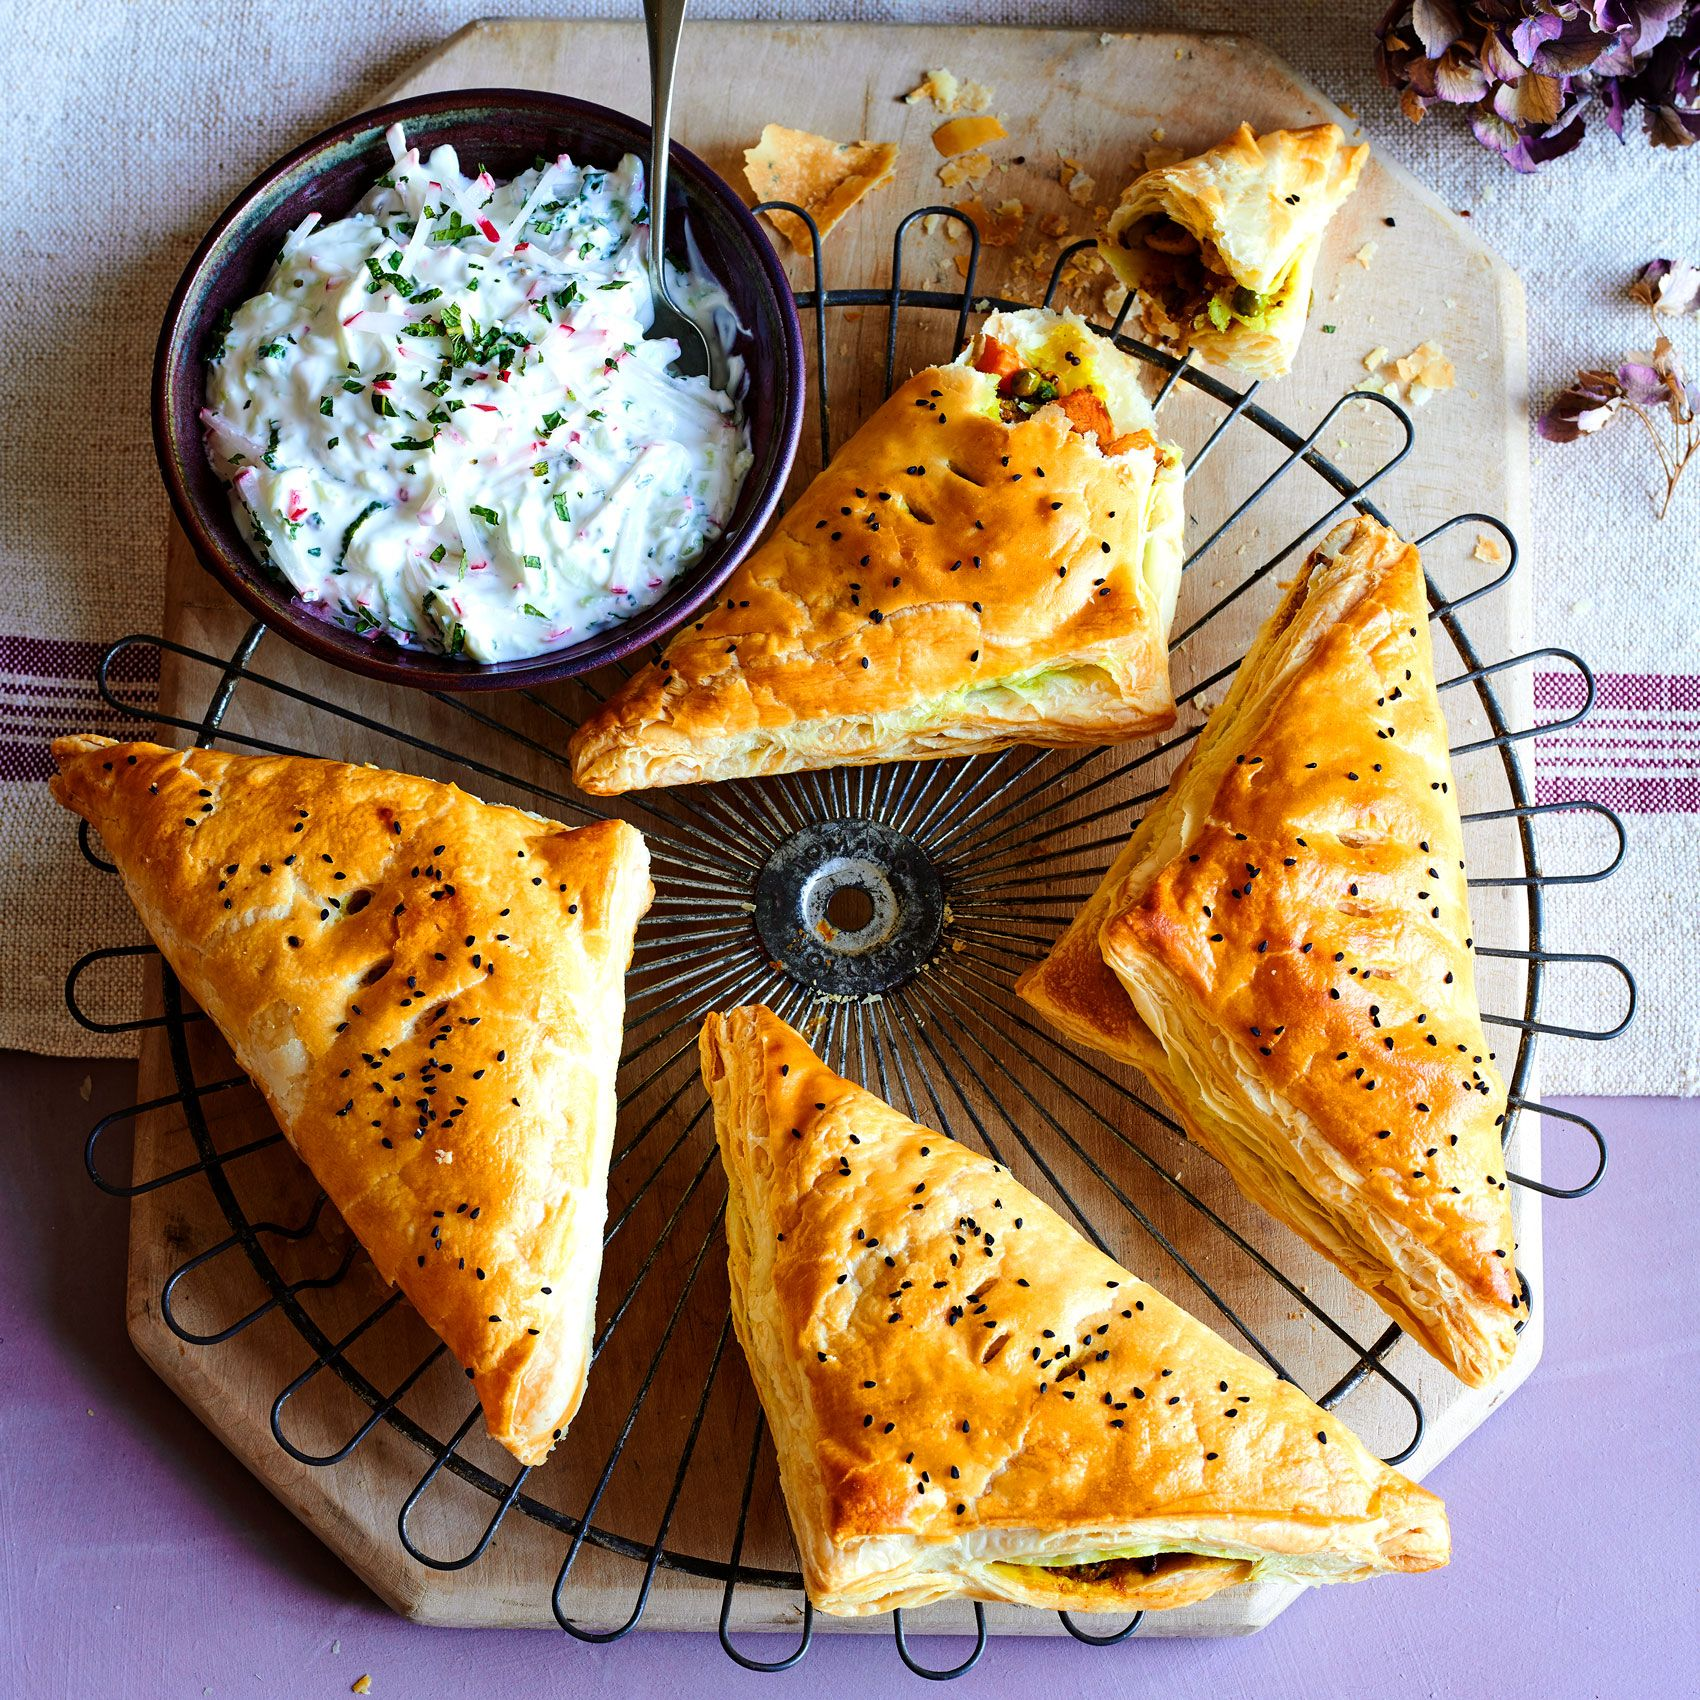 Spicy Vegetable Turnovers